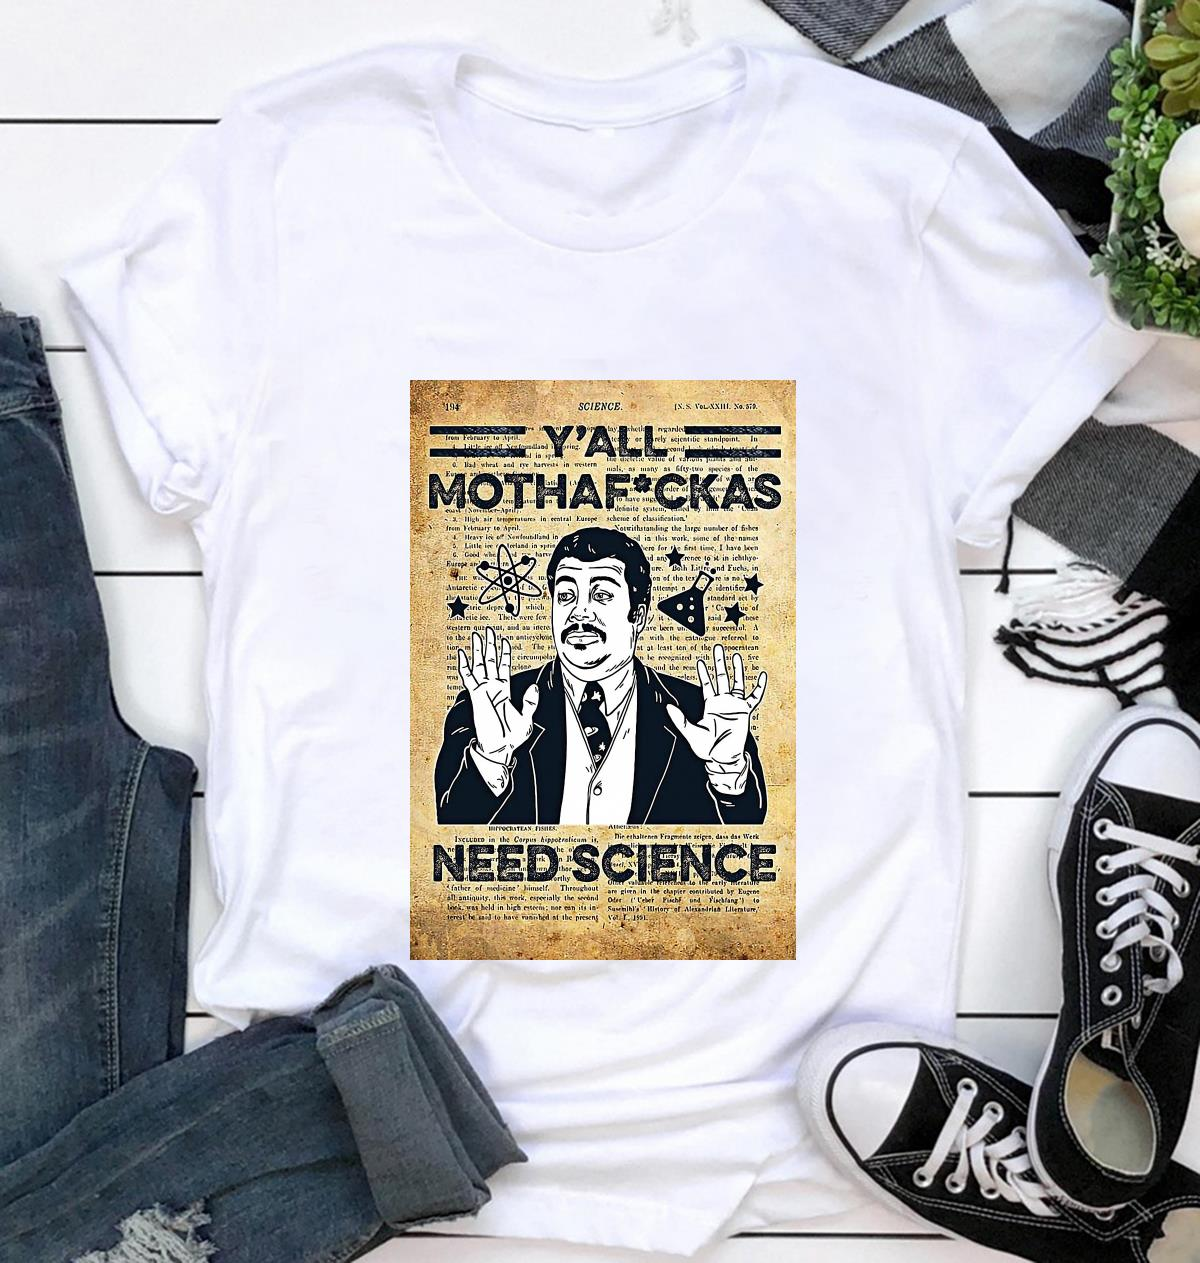 Y'all mothaf'ckas need science dictionary poster t-shirt